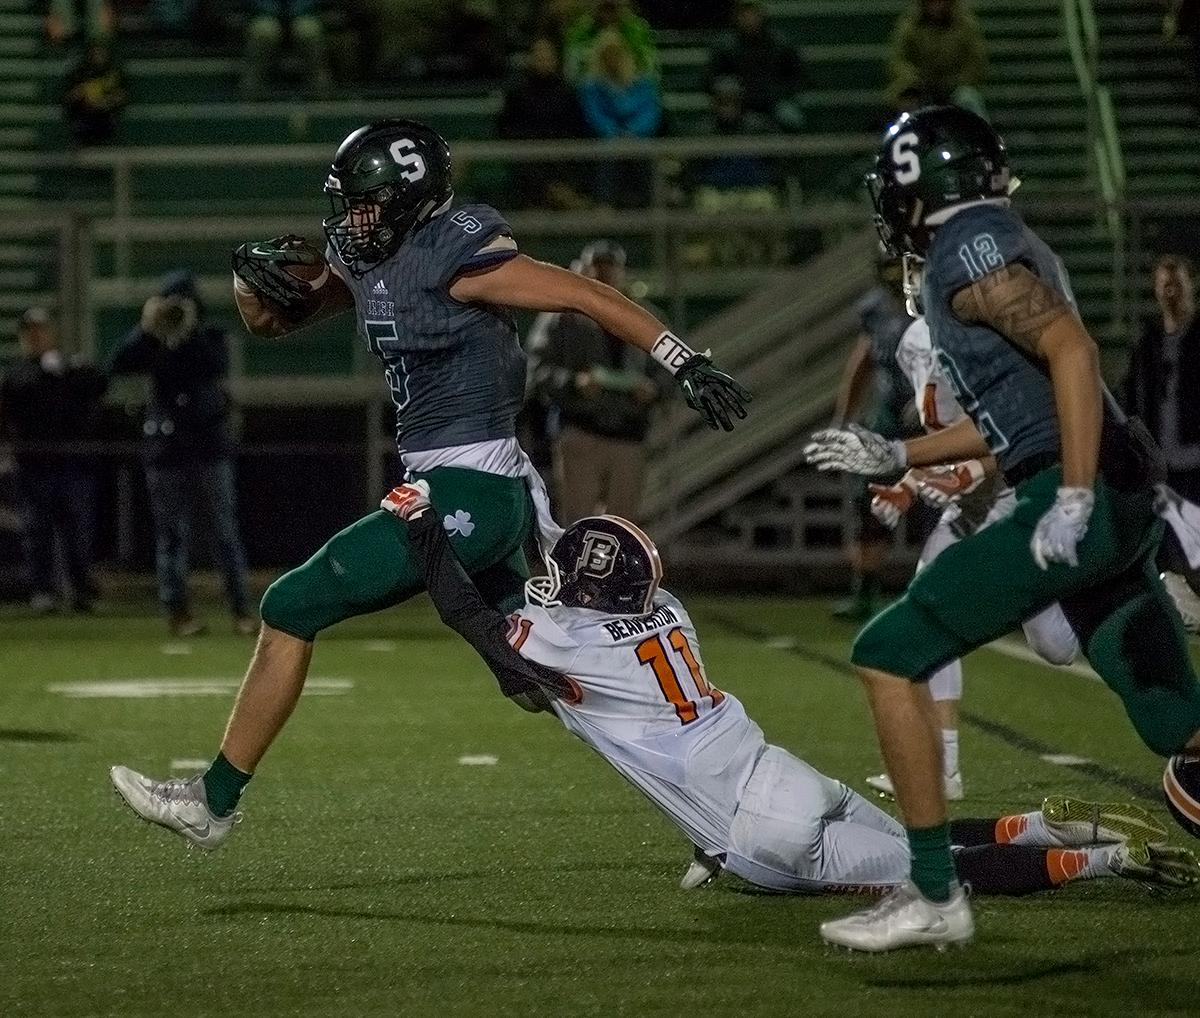 Sheldon Irish wide receiver Patrick Herbert (#5) runs through Beaverton Beavers defensive back Jack Laperle's (#11) tackle. The Sheldon Irish defeated the Beaverton Beavers 48-7 on Friday night at Sheldon in the first round of 6A state playoffs. Photo by Abigail Winn, Oregon News Lab